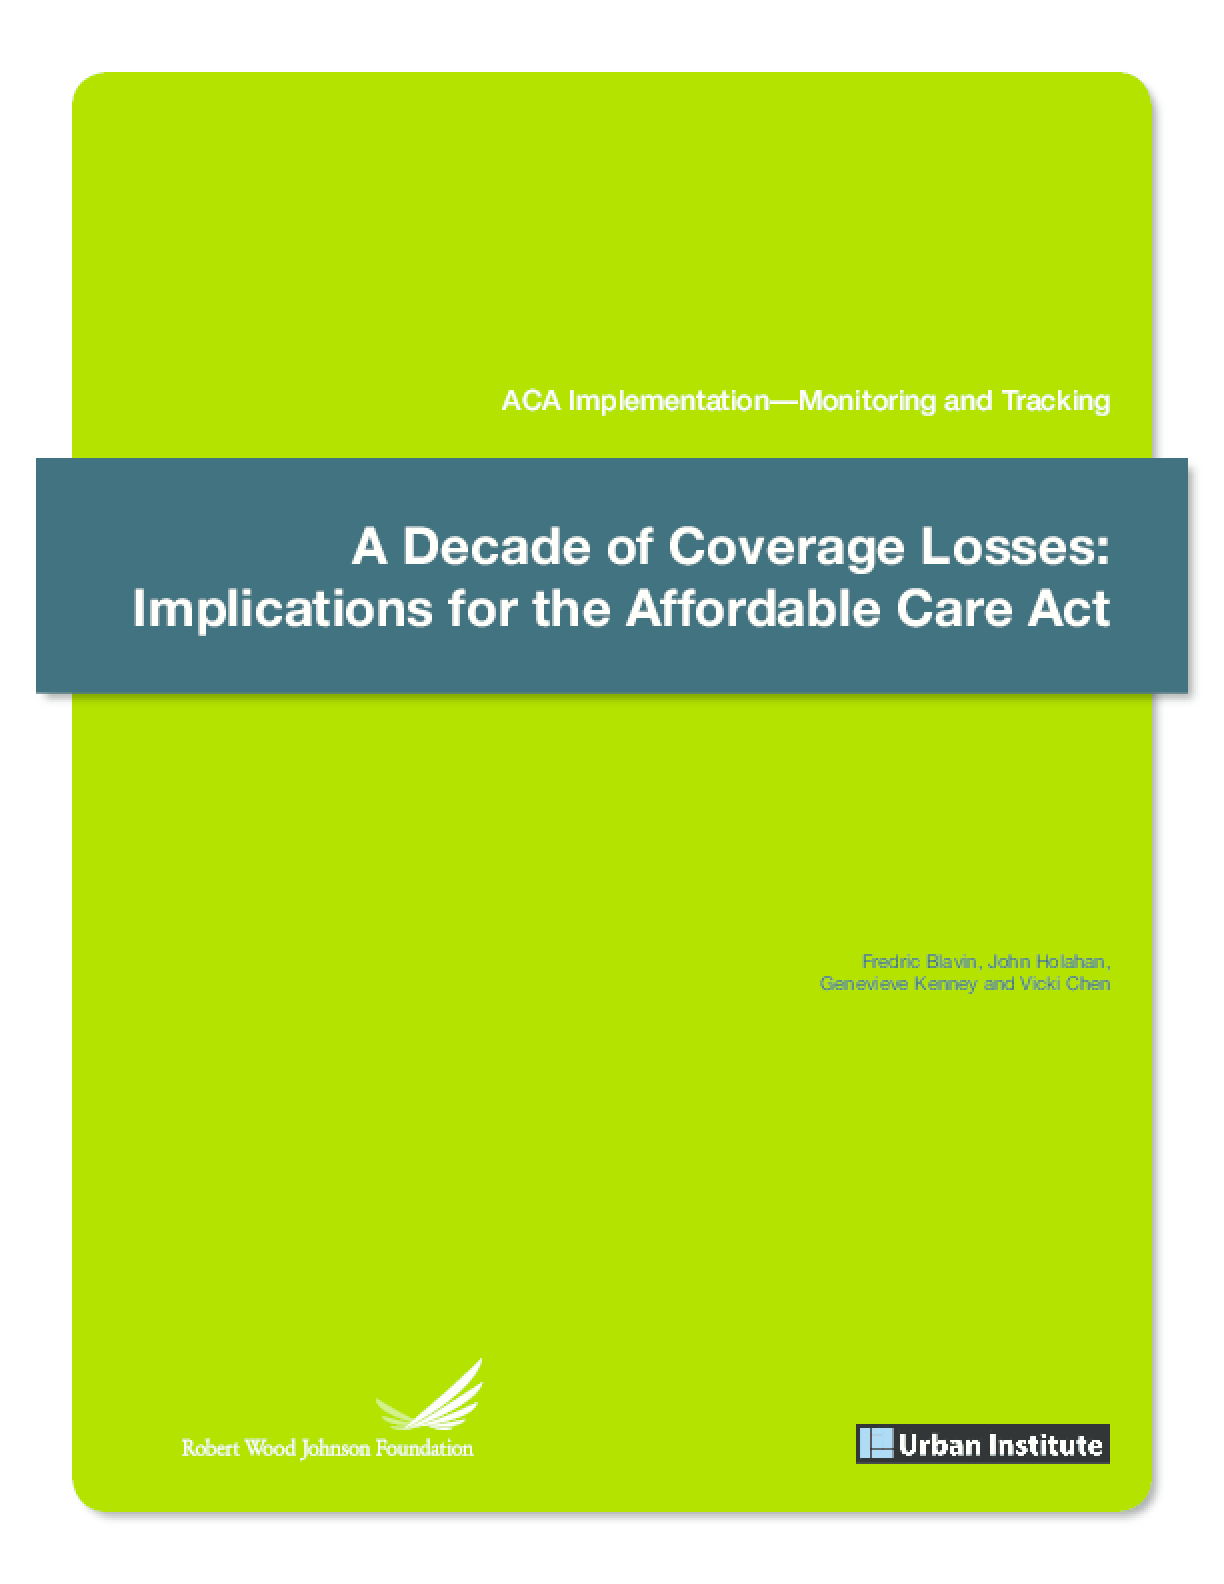 A Decade of Coverage Losses: Implications for the Affordable Care Act